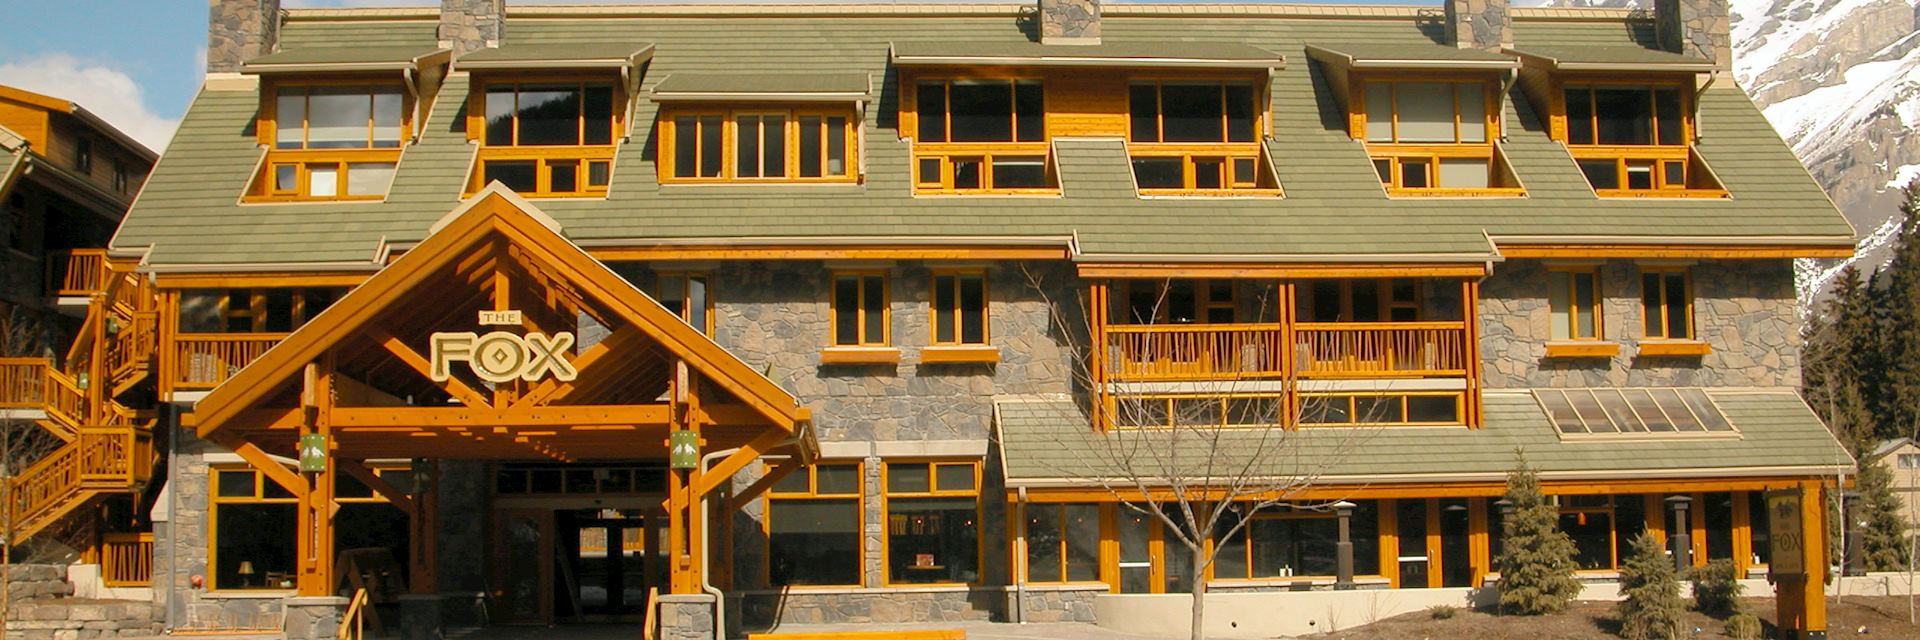 The Fox Hotel & Suites, Banff